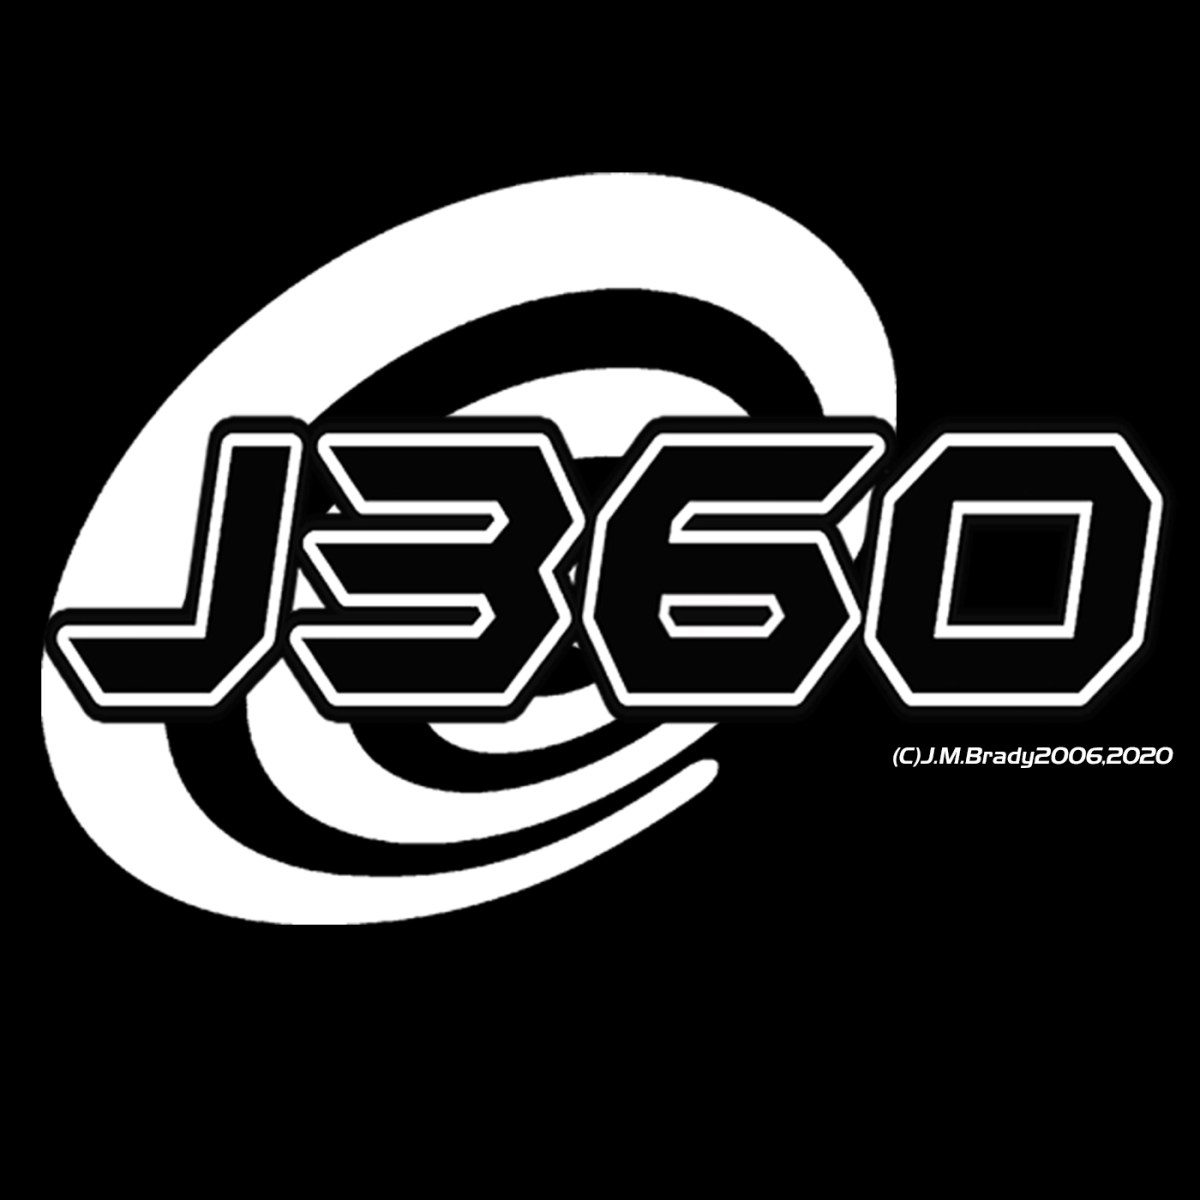 To showcase the greatness of J360 Productions